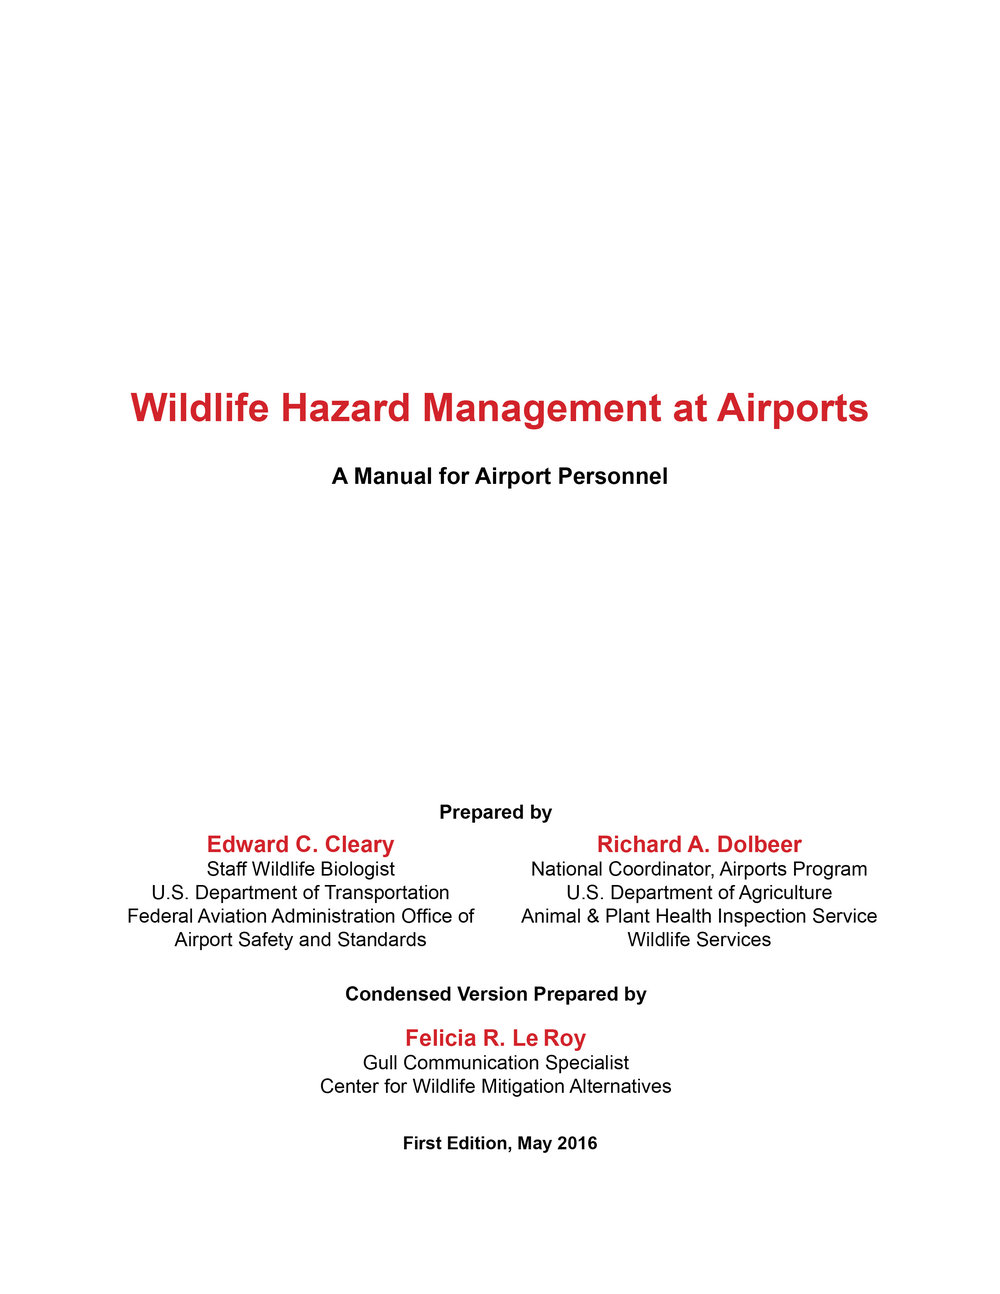 wildlife-hazard-managment-short.jpg